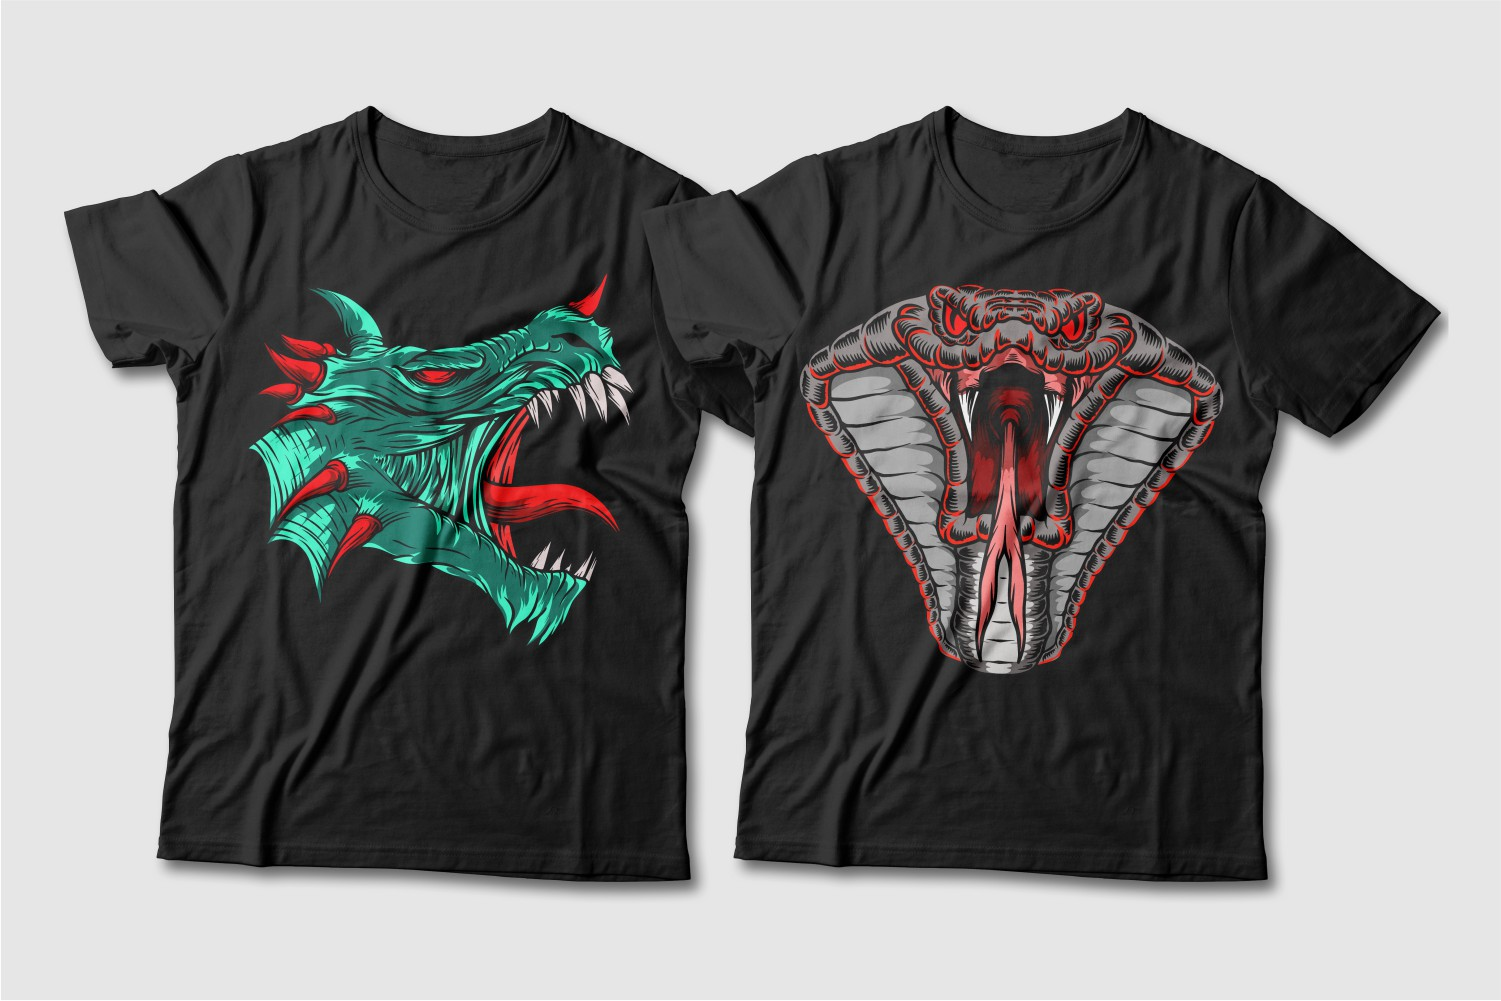 Black T-shirts featuring a green dragon with red horns and a gray snake in full face.